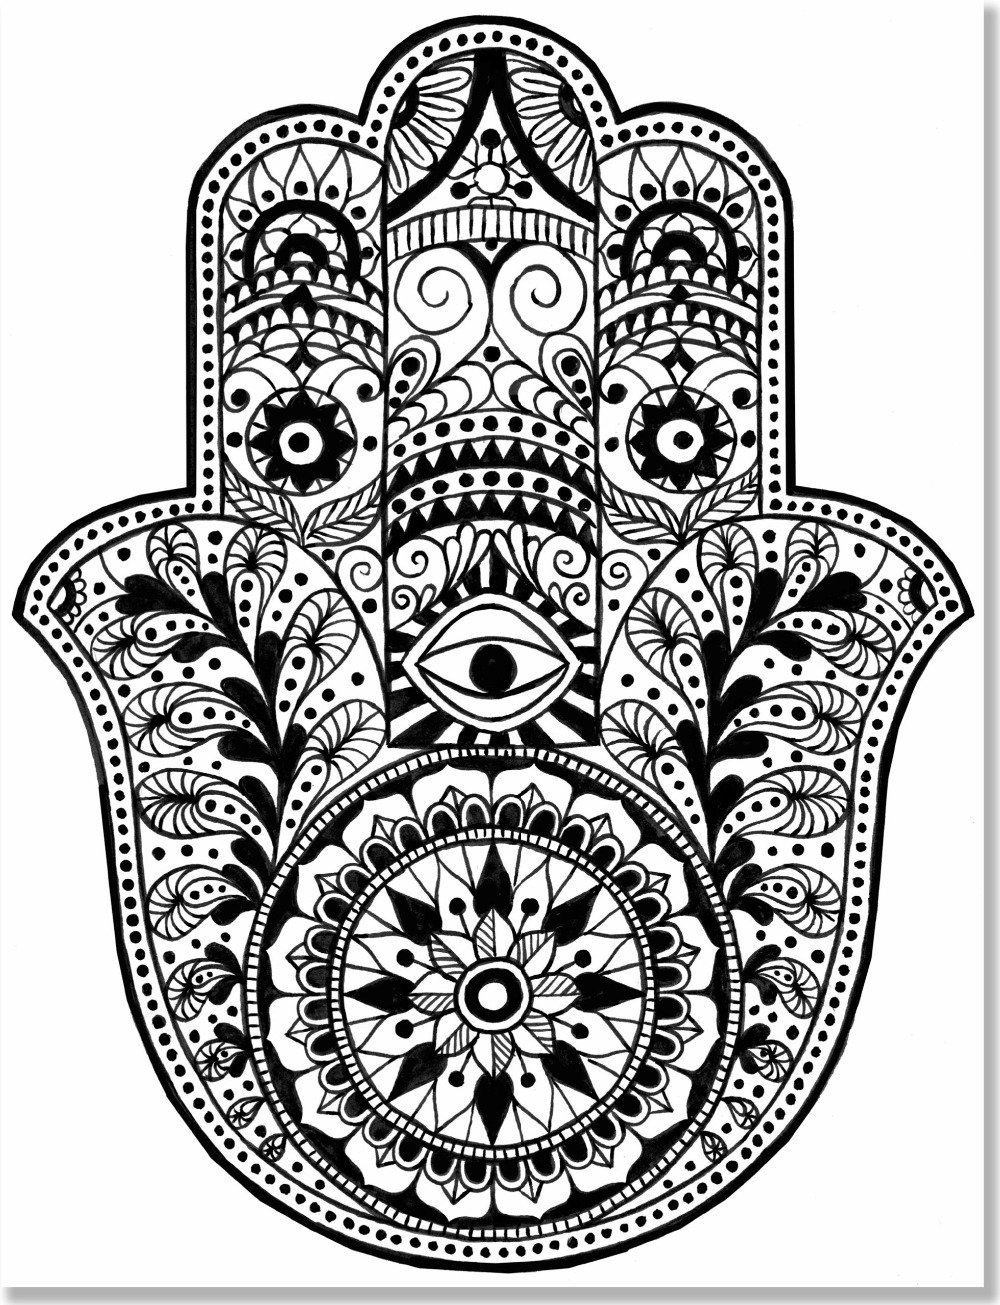 Free coloring pages app - Mandala Coloring Pages App Aliexpress Com Buy Mandala Designs Coloring Book 31 Stress Relieving Designs